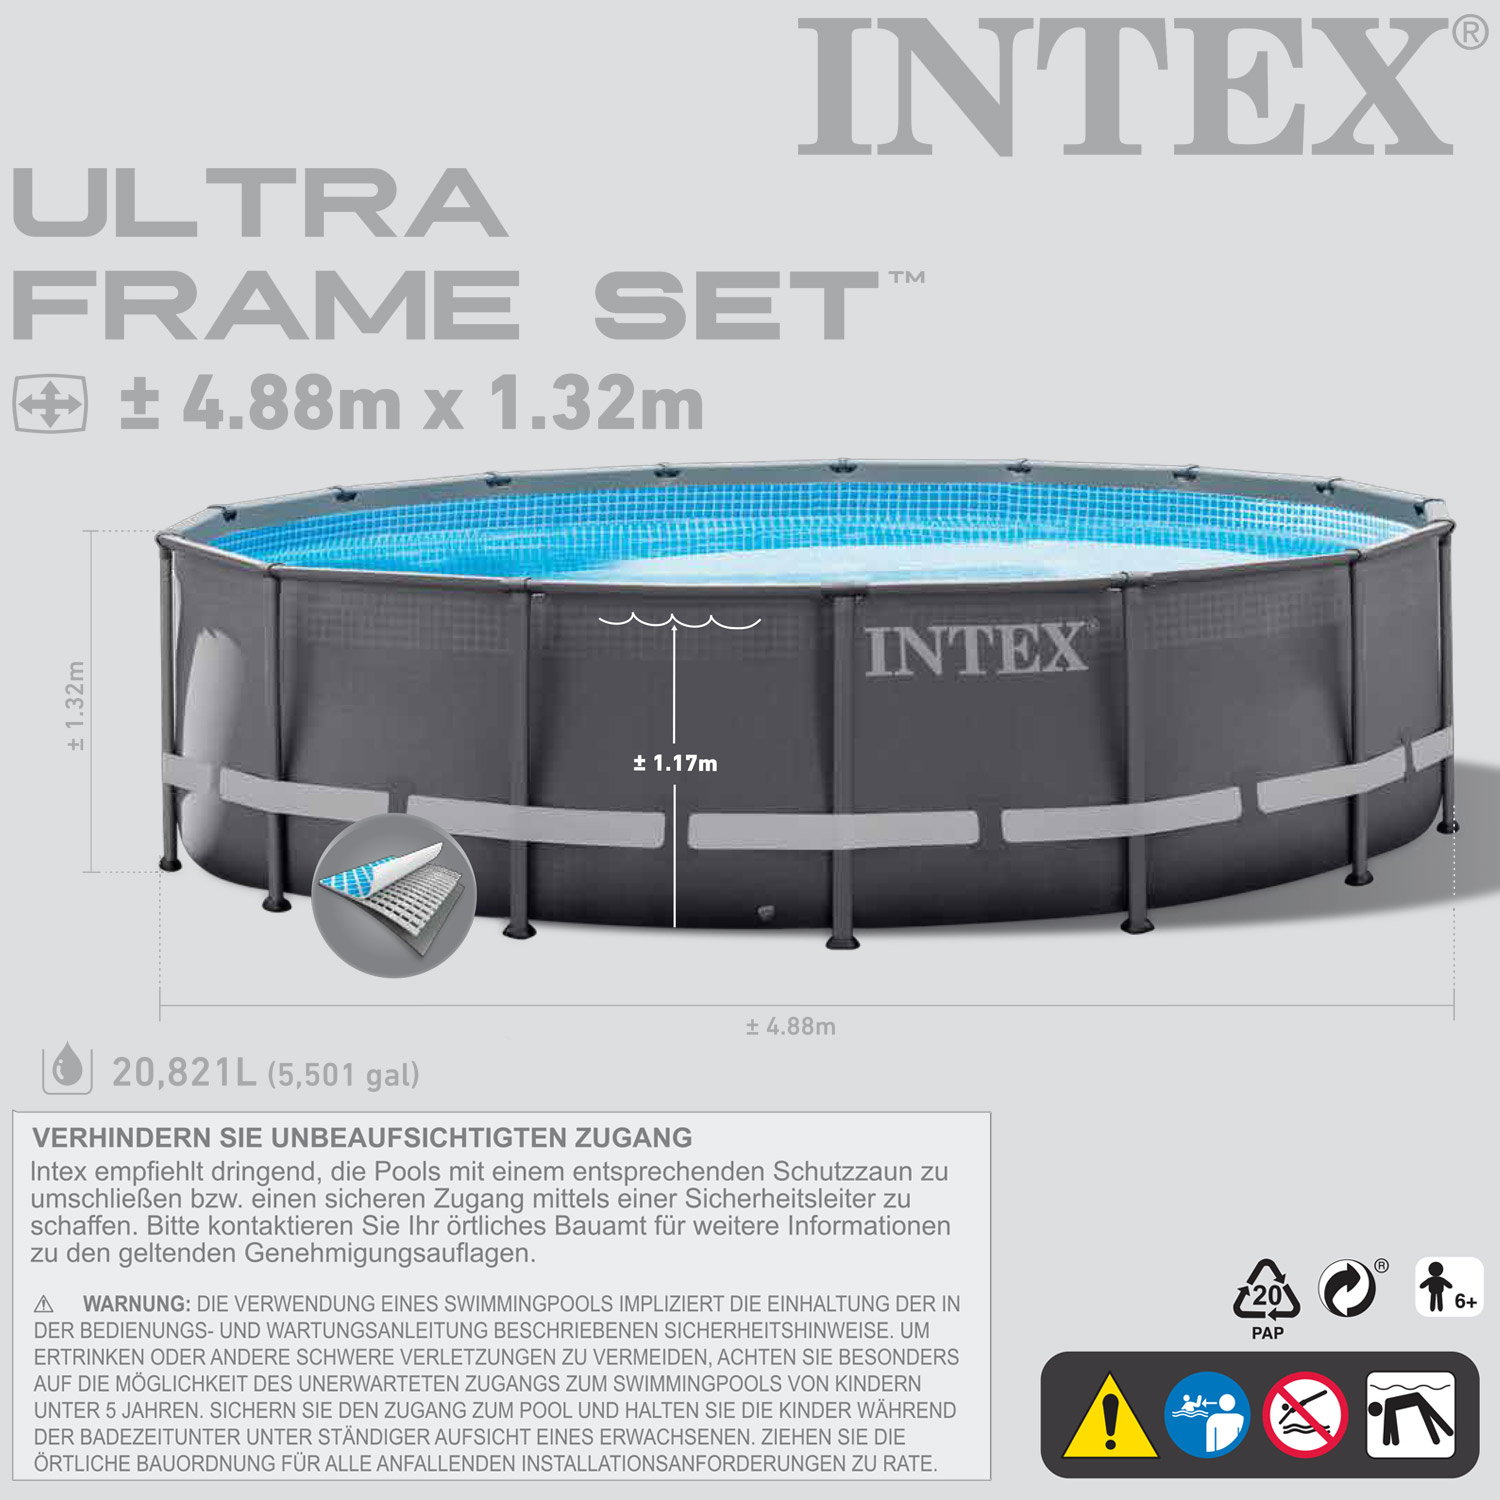 intex 28924 ersatzpool 488x132 cm swimming pool frame ohne zubeh r. Black Bedroom Furniture Sets. Home Design Ideas